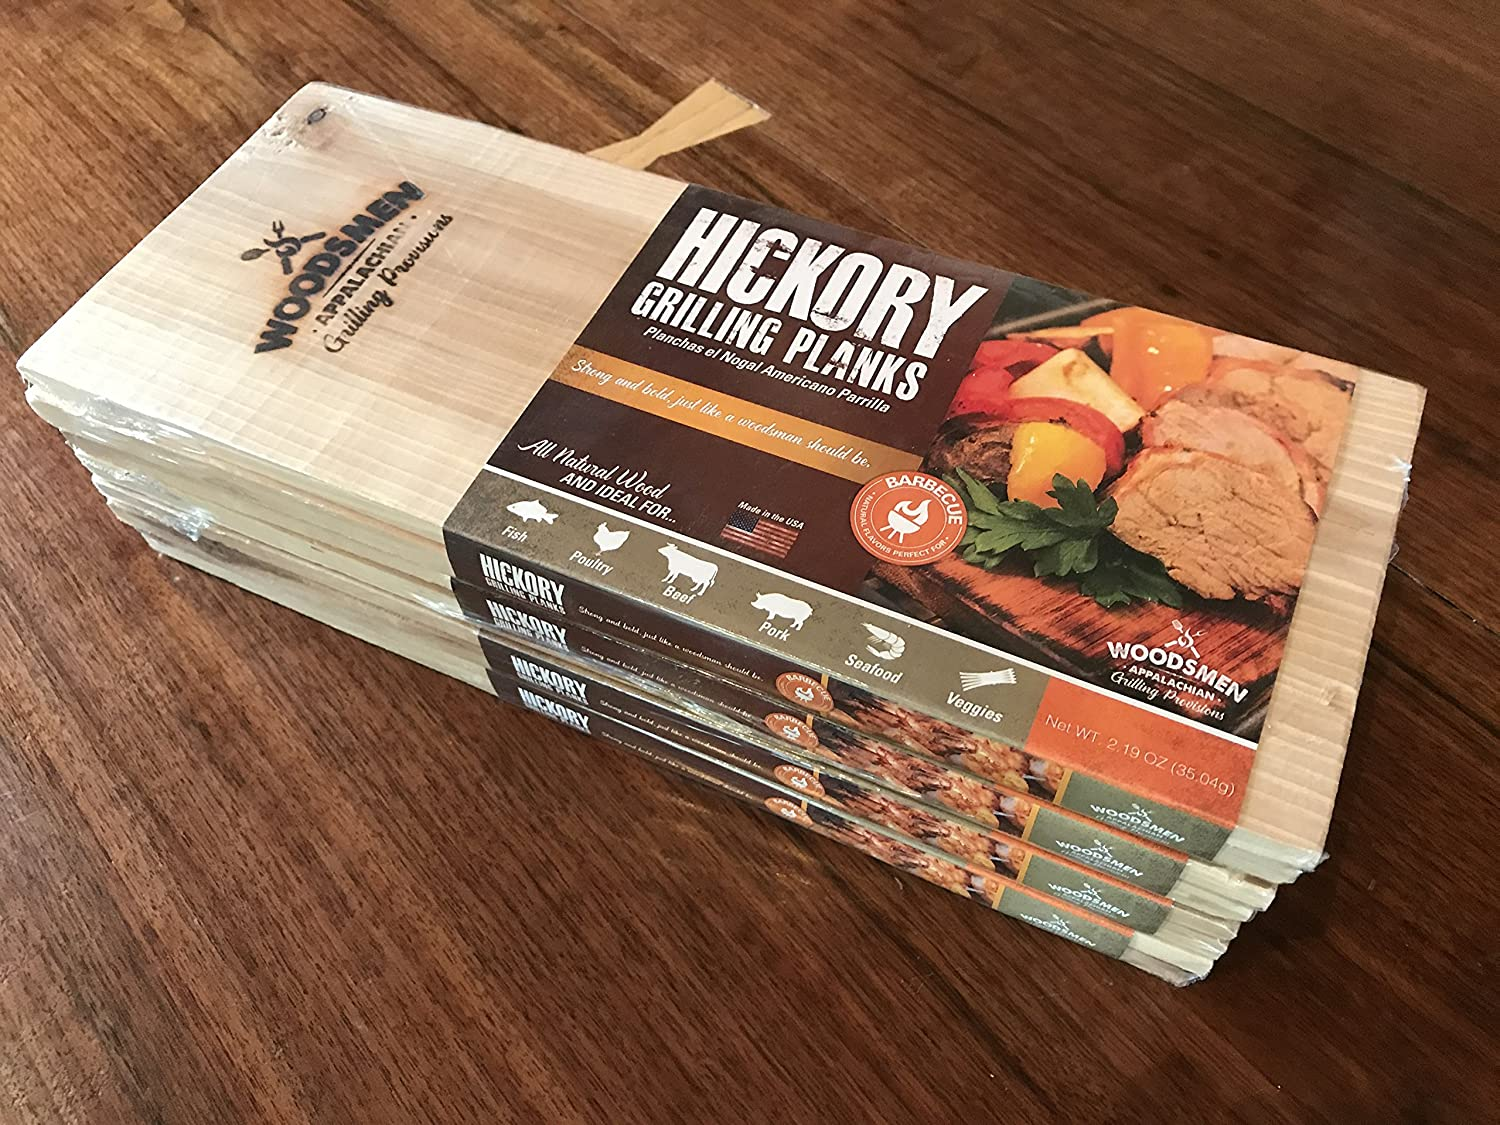 Amazon.com : Hickory Grilling Planks : Garden & Outdoor